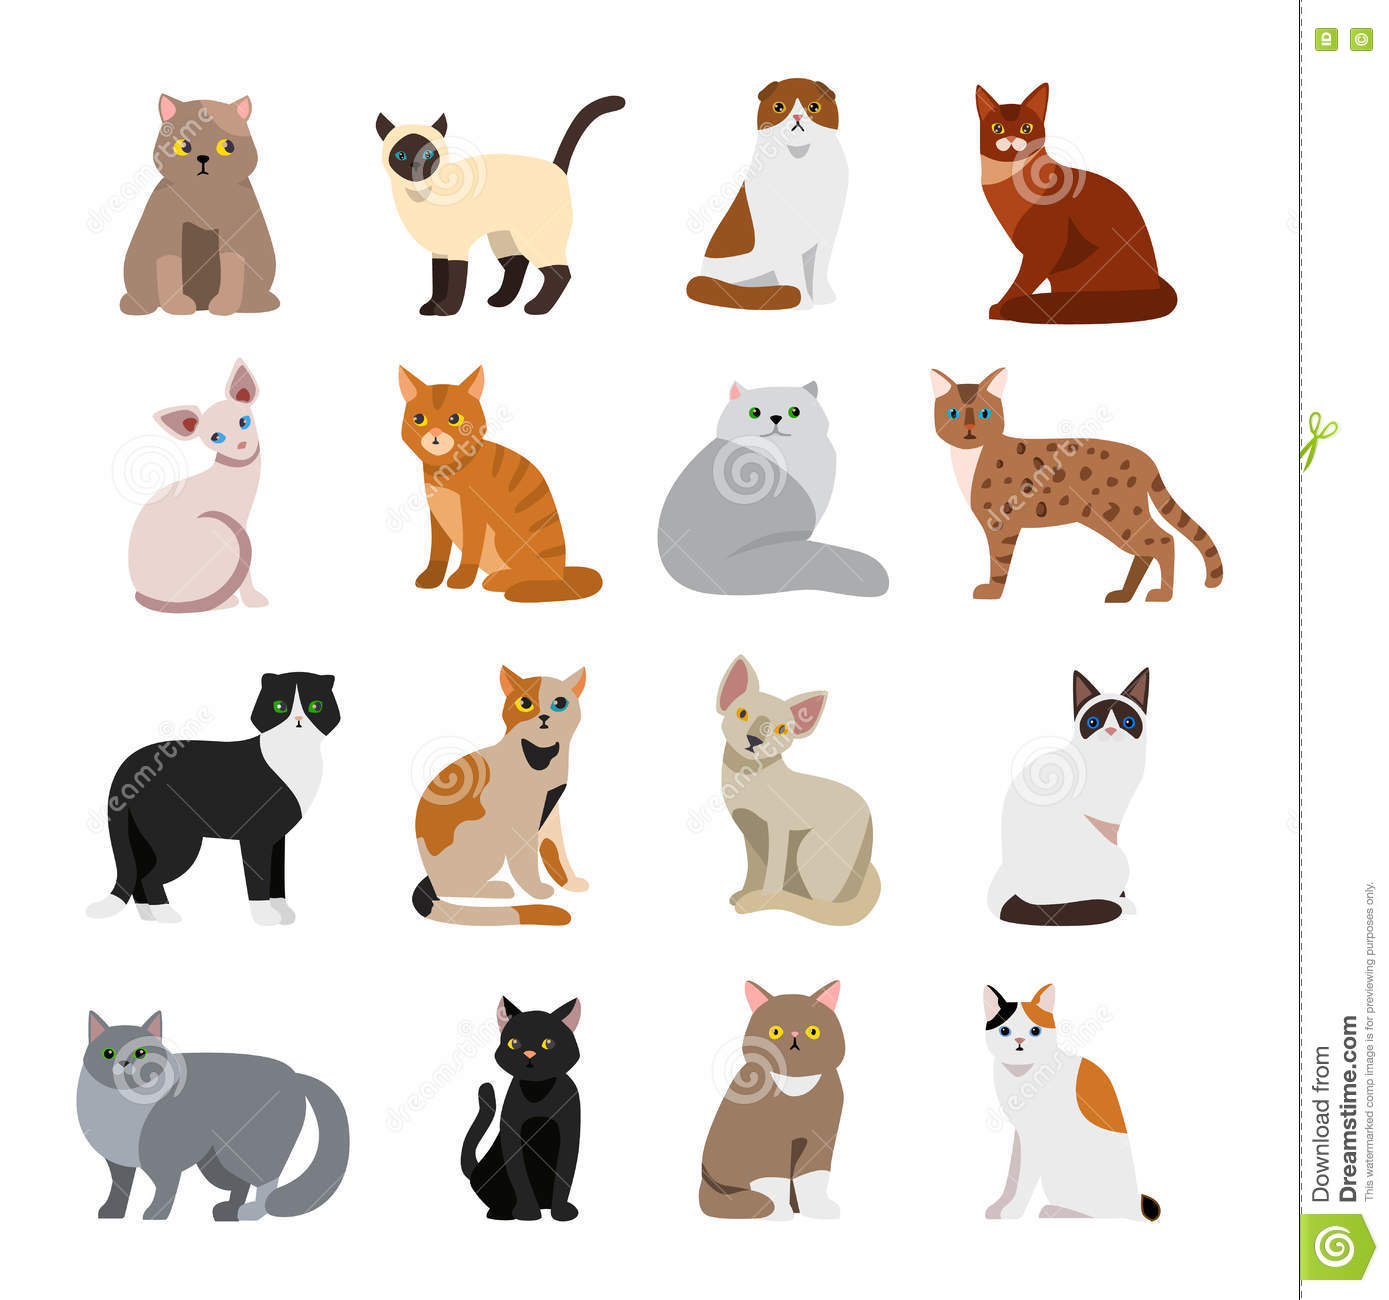 Katzenrassen Der Welt Poster Cat Breeds Cute Pet Animal Set Stock Vector - Illustration